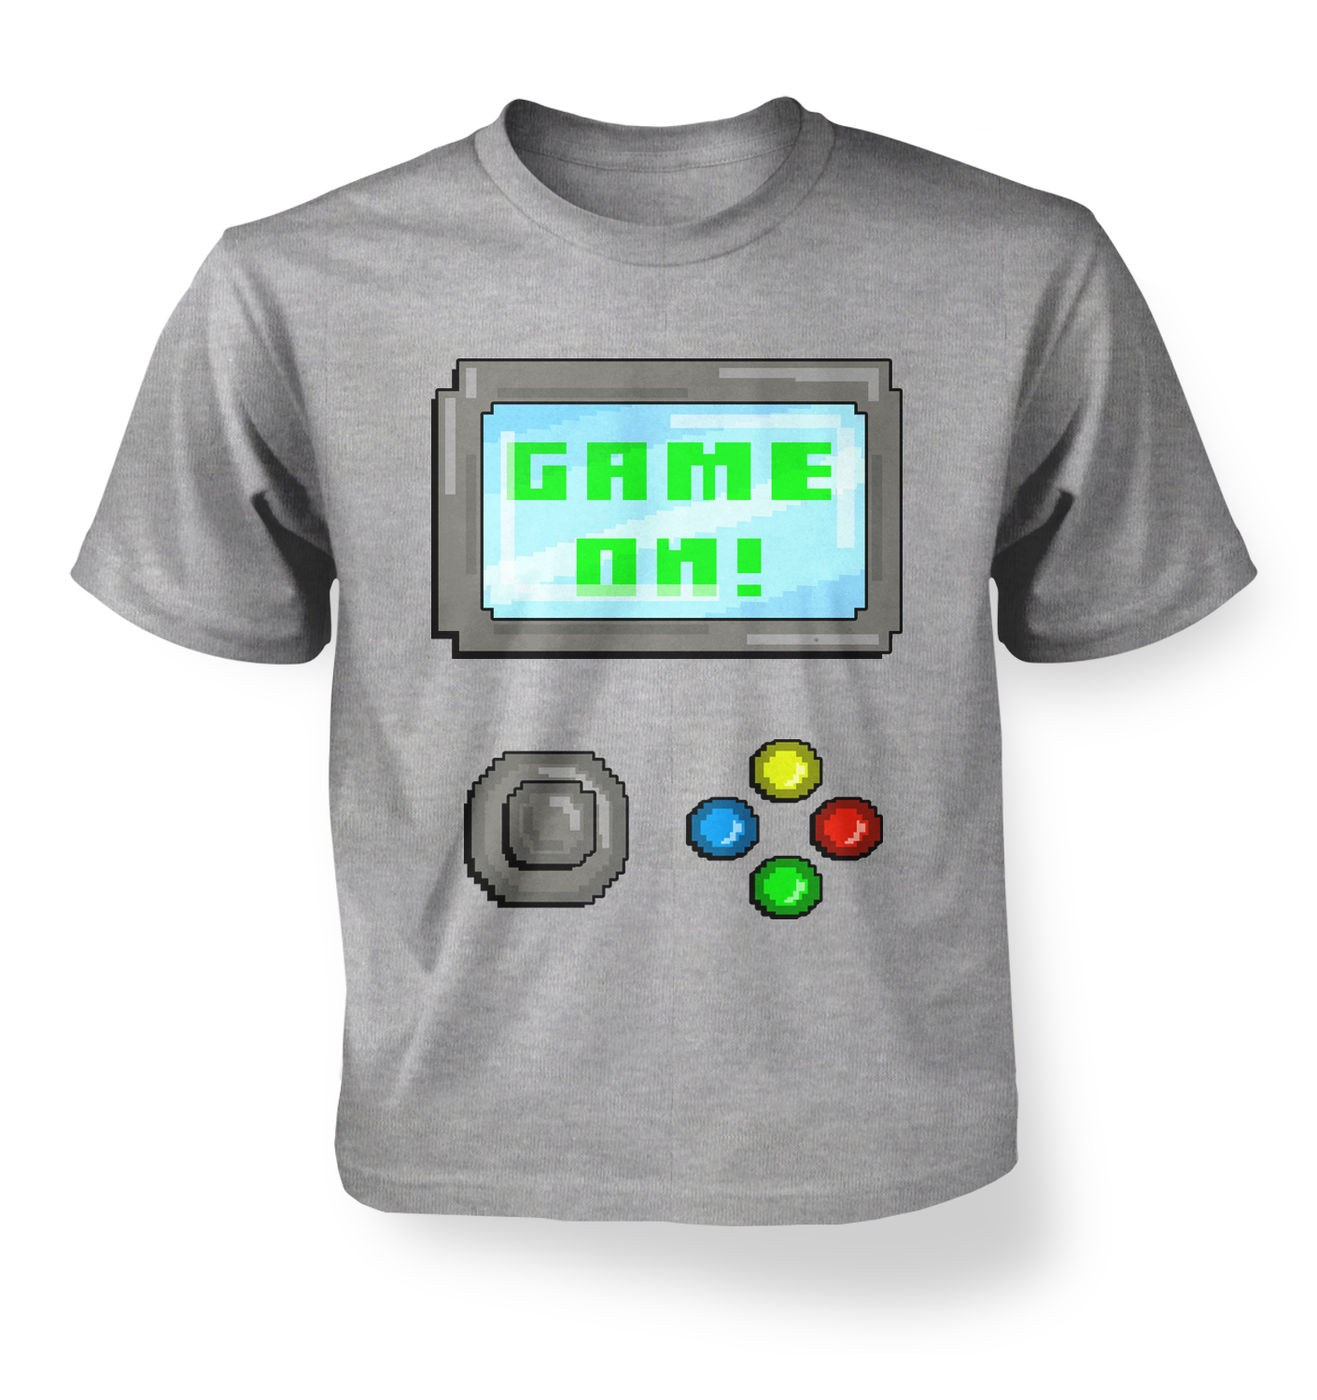 Game On kids t-shirt by Something Geeky